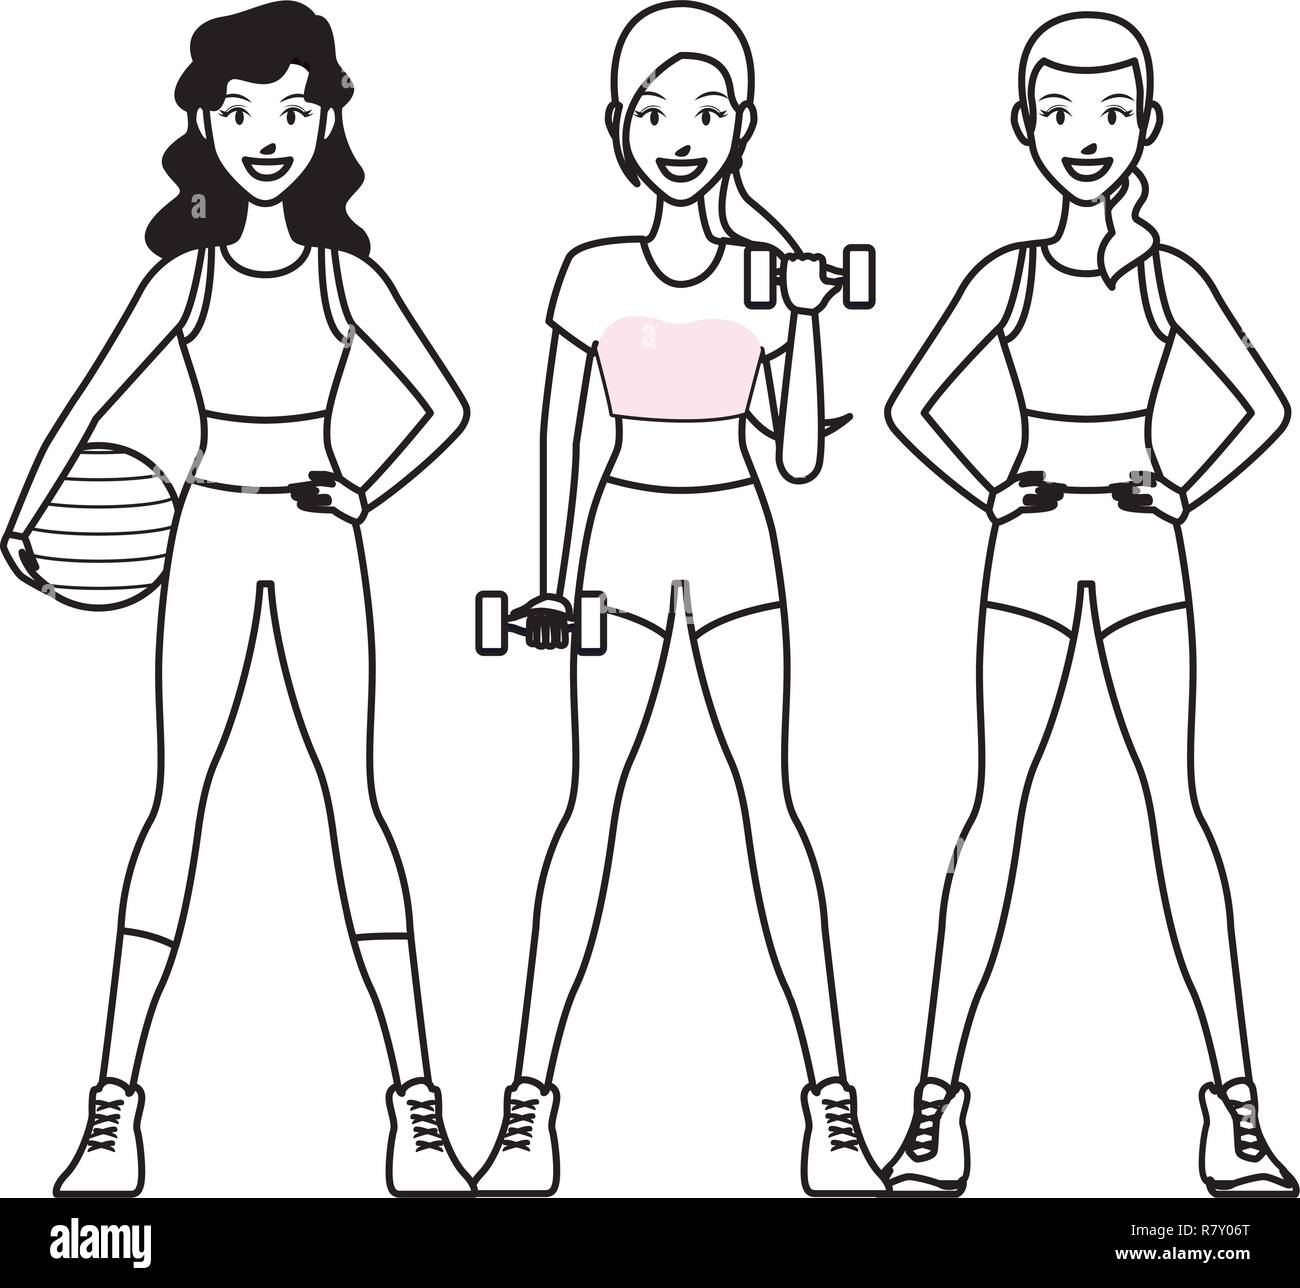 Fit Women Doing Exercise Stock Vector Image Art Alamy This site is a community effort to recognize the hard work of female athletes, fitness models, and bodybuilders. alamy